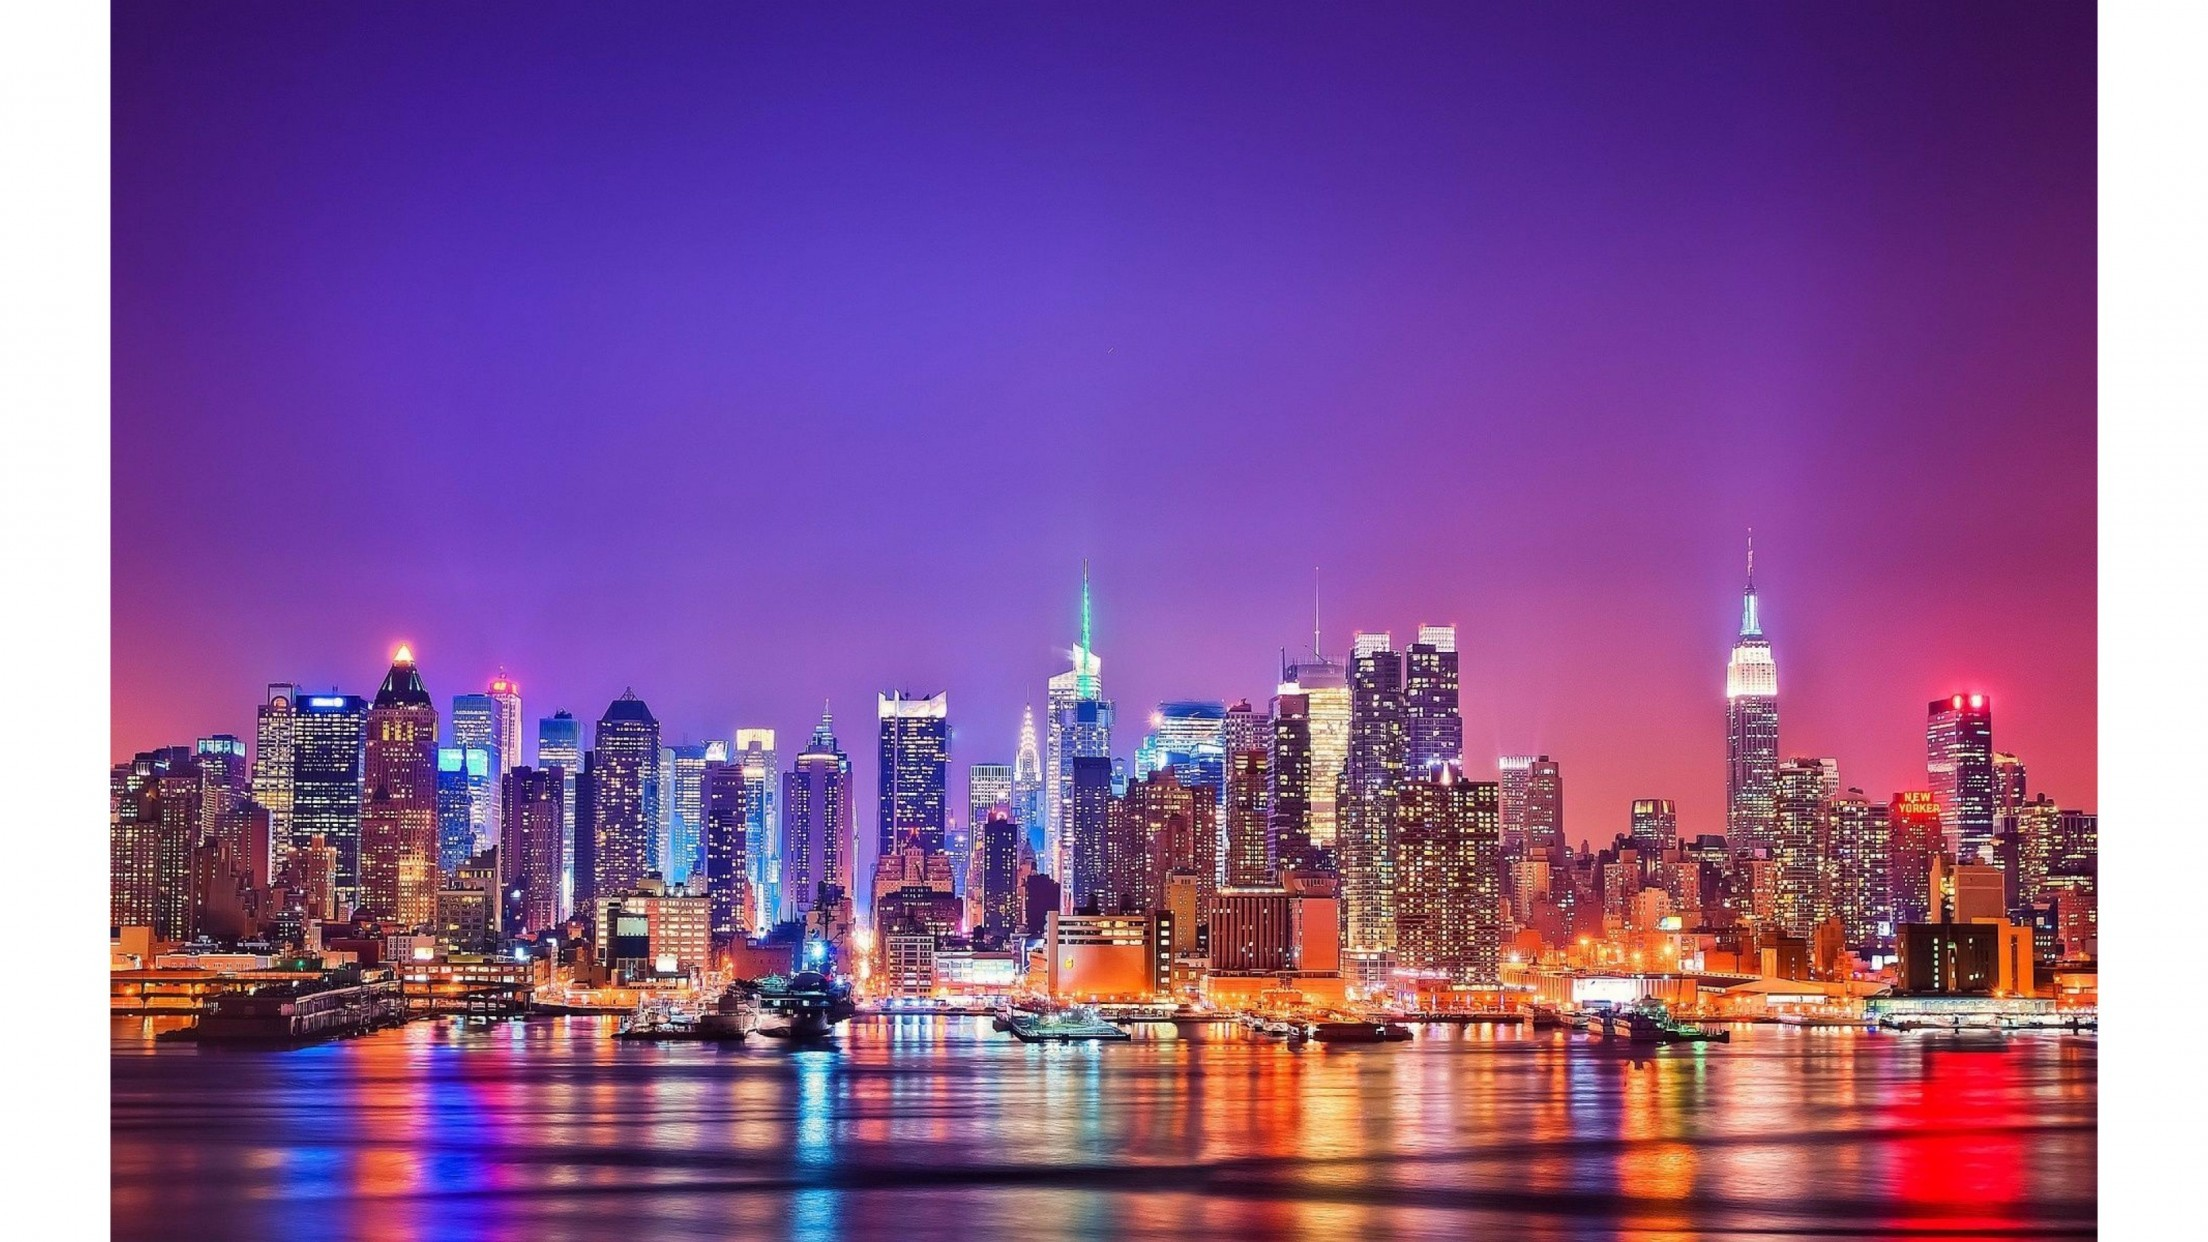 City Lights New York City 4K Wallpaper | Free 4K Wallpaper